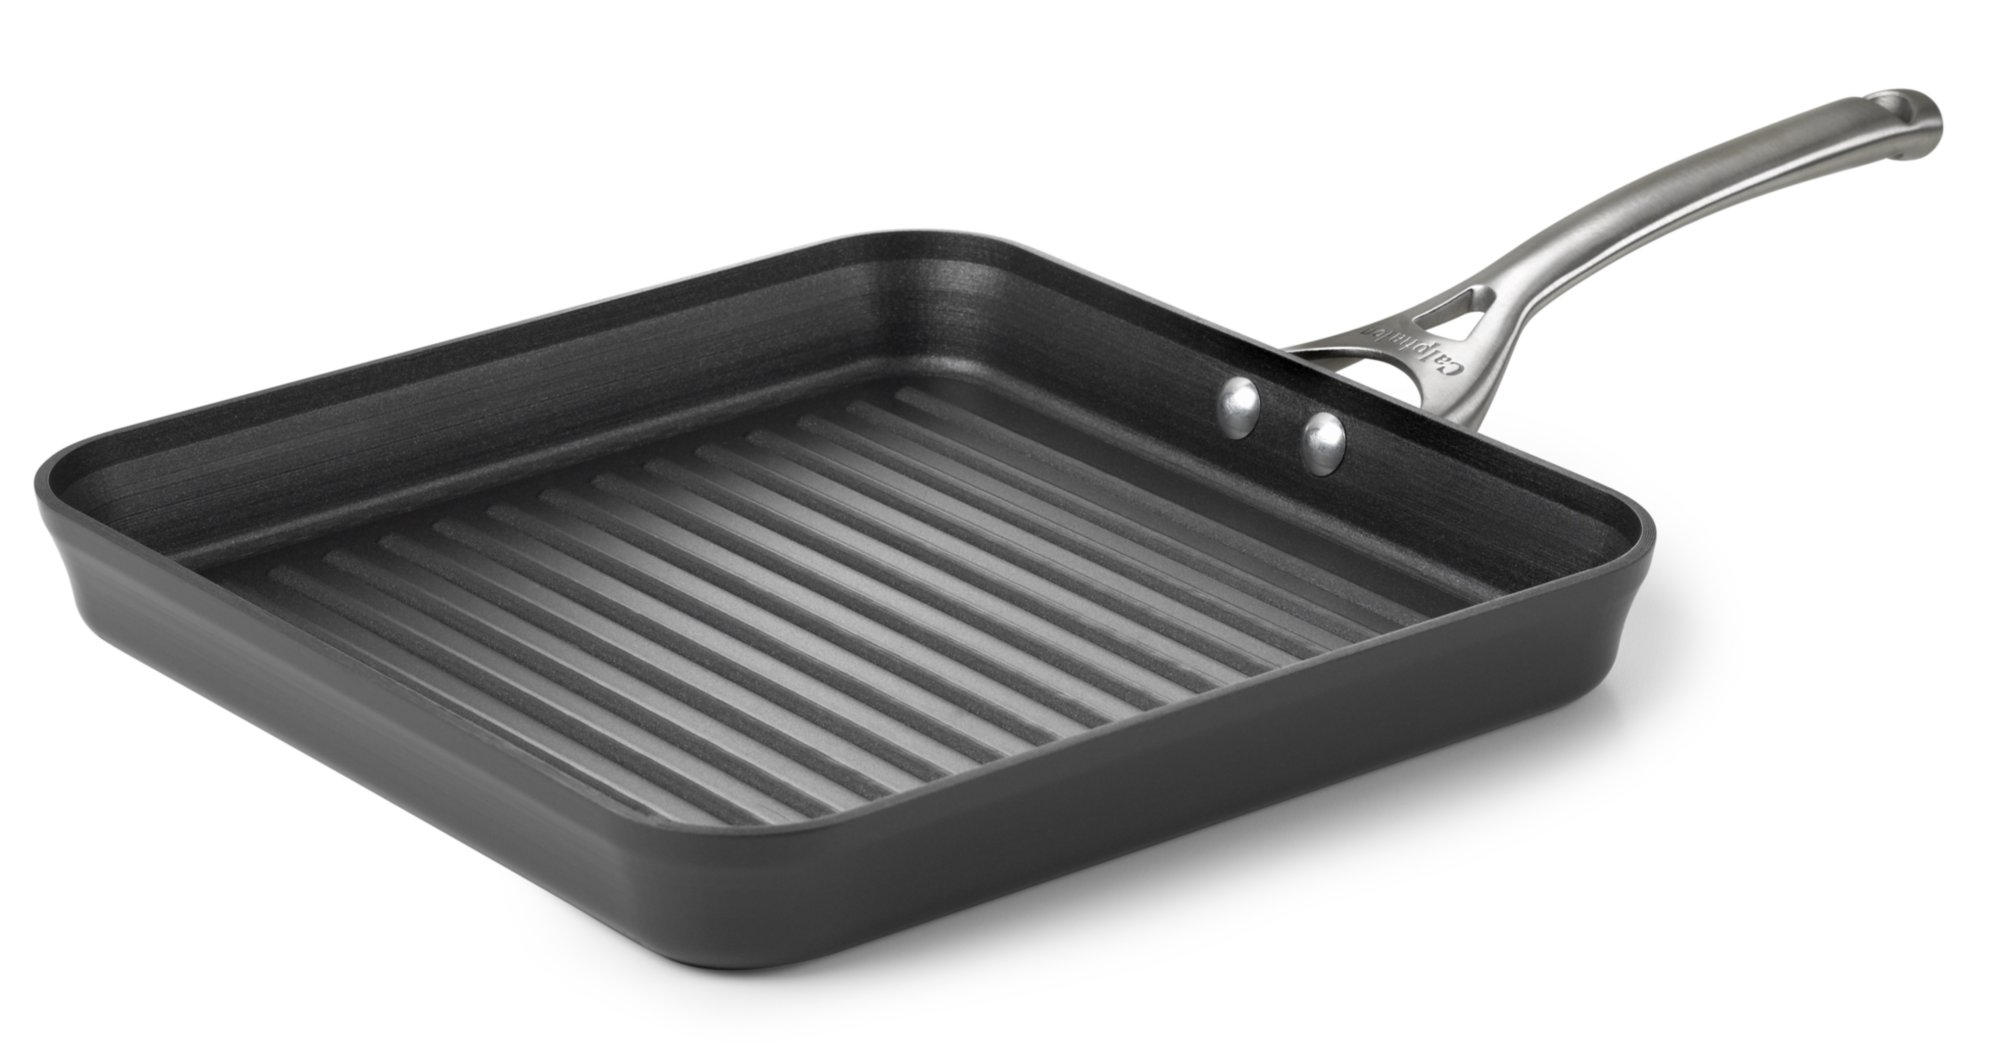 Calphalon Contemporary Nonstick 11-in. Square Grill